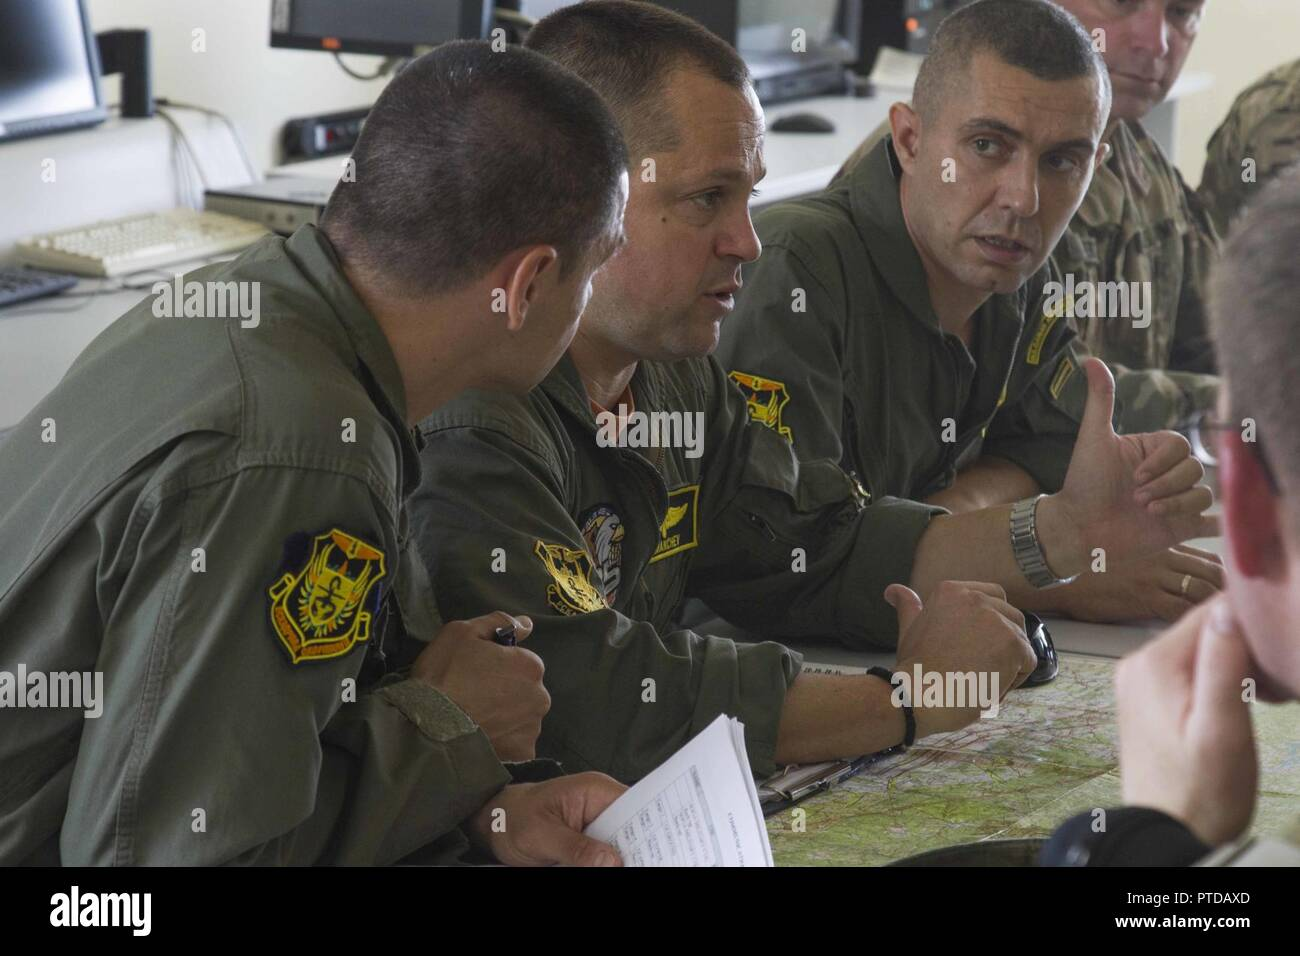 Bulgarian Air Force pilots help to plan an upcoming combat search and rescue mission as part of exercise Saber Guardian 17 at Plovdiv, Bulgaria, on July 10. By synchronizing each other's communications systems, flight patterns, and answering questions, a deeper level of understanding is reached by each side and interoperability between NATO Allies is acheived. Stock Photo